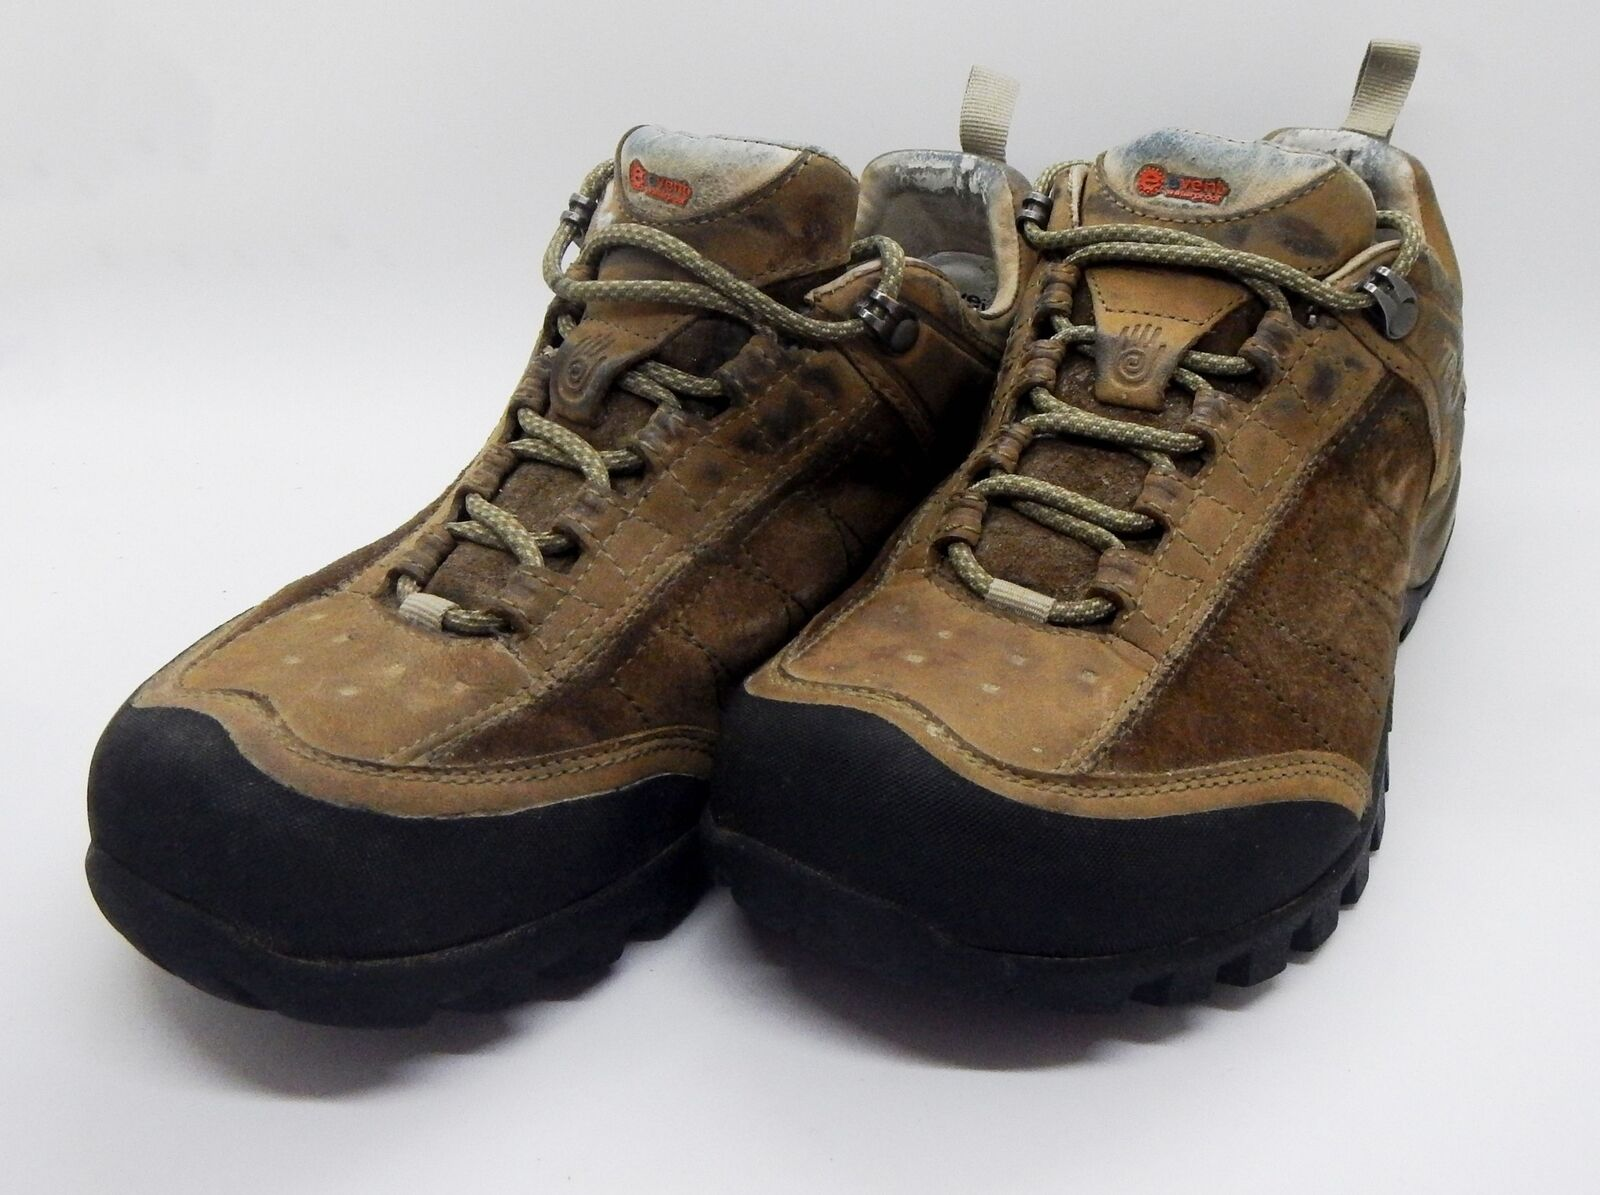 TEVA Men 7.5 RIVA Event Water Proof Hiking shoes Tan, Brown, & Black Style  4103